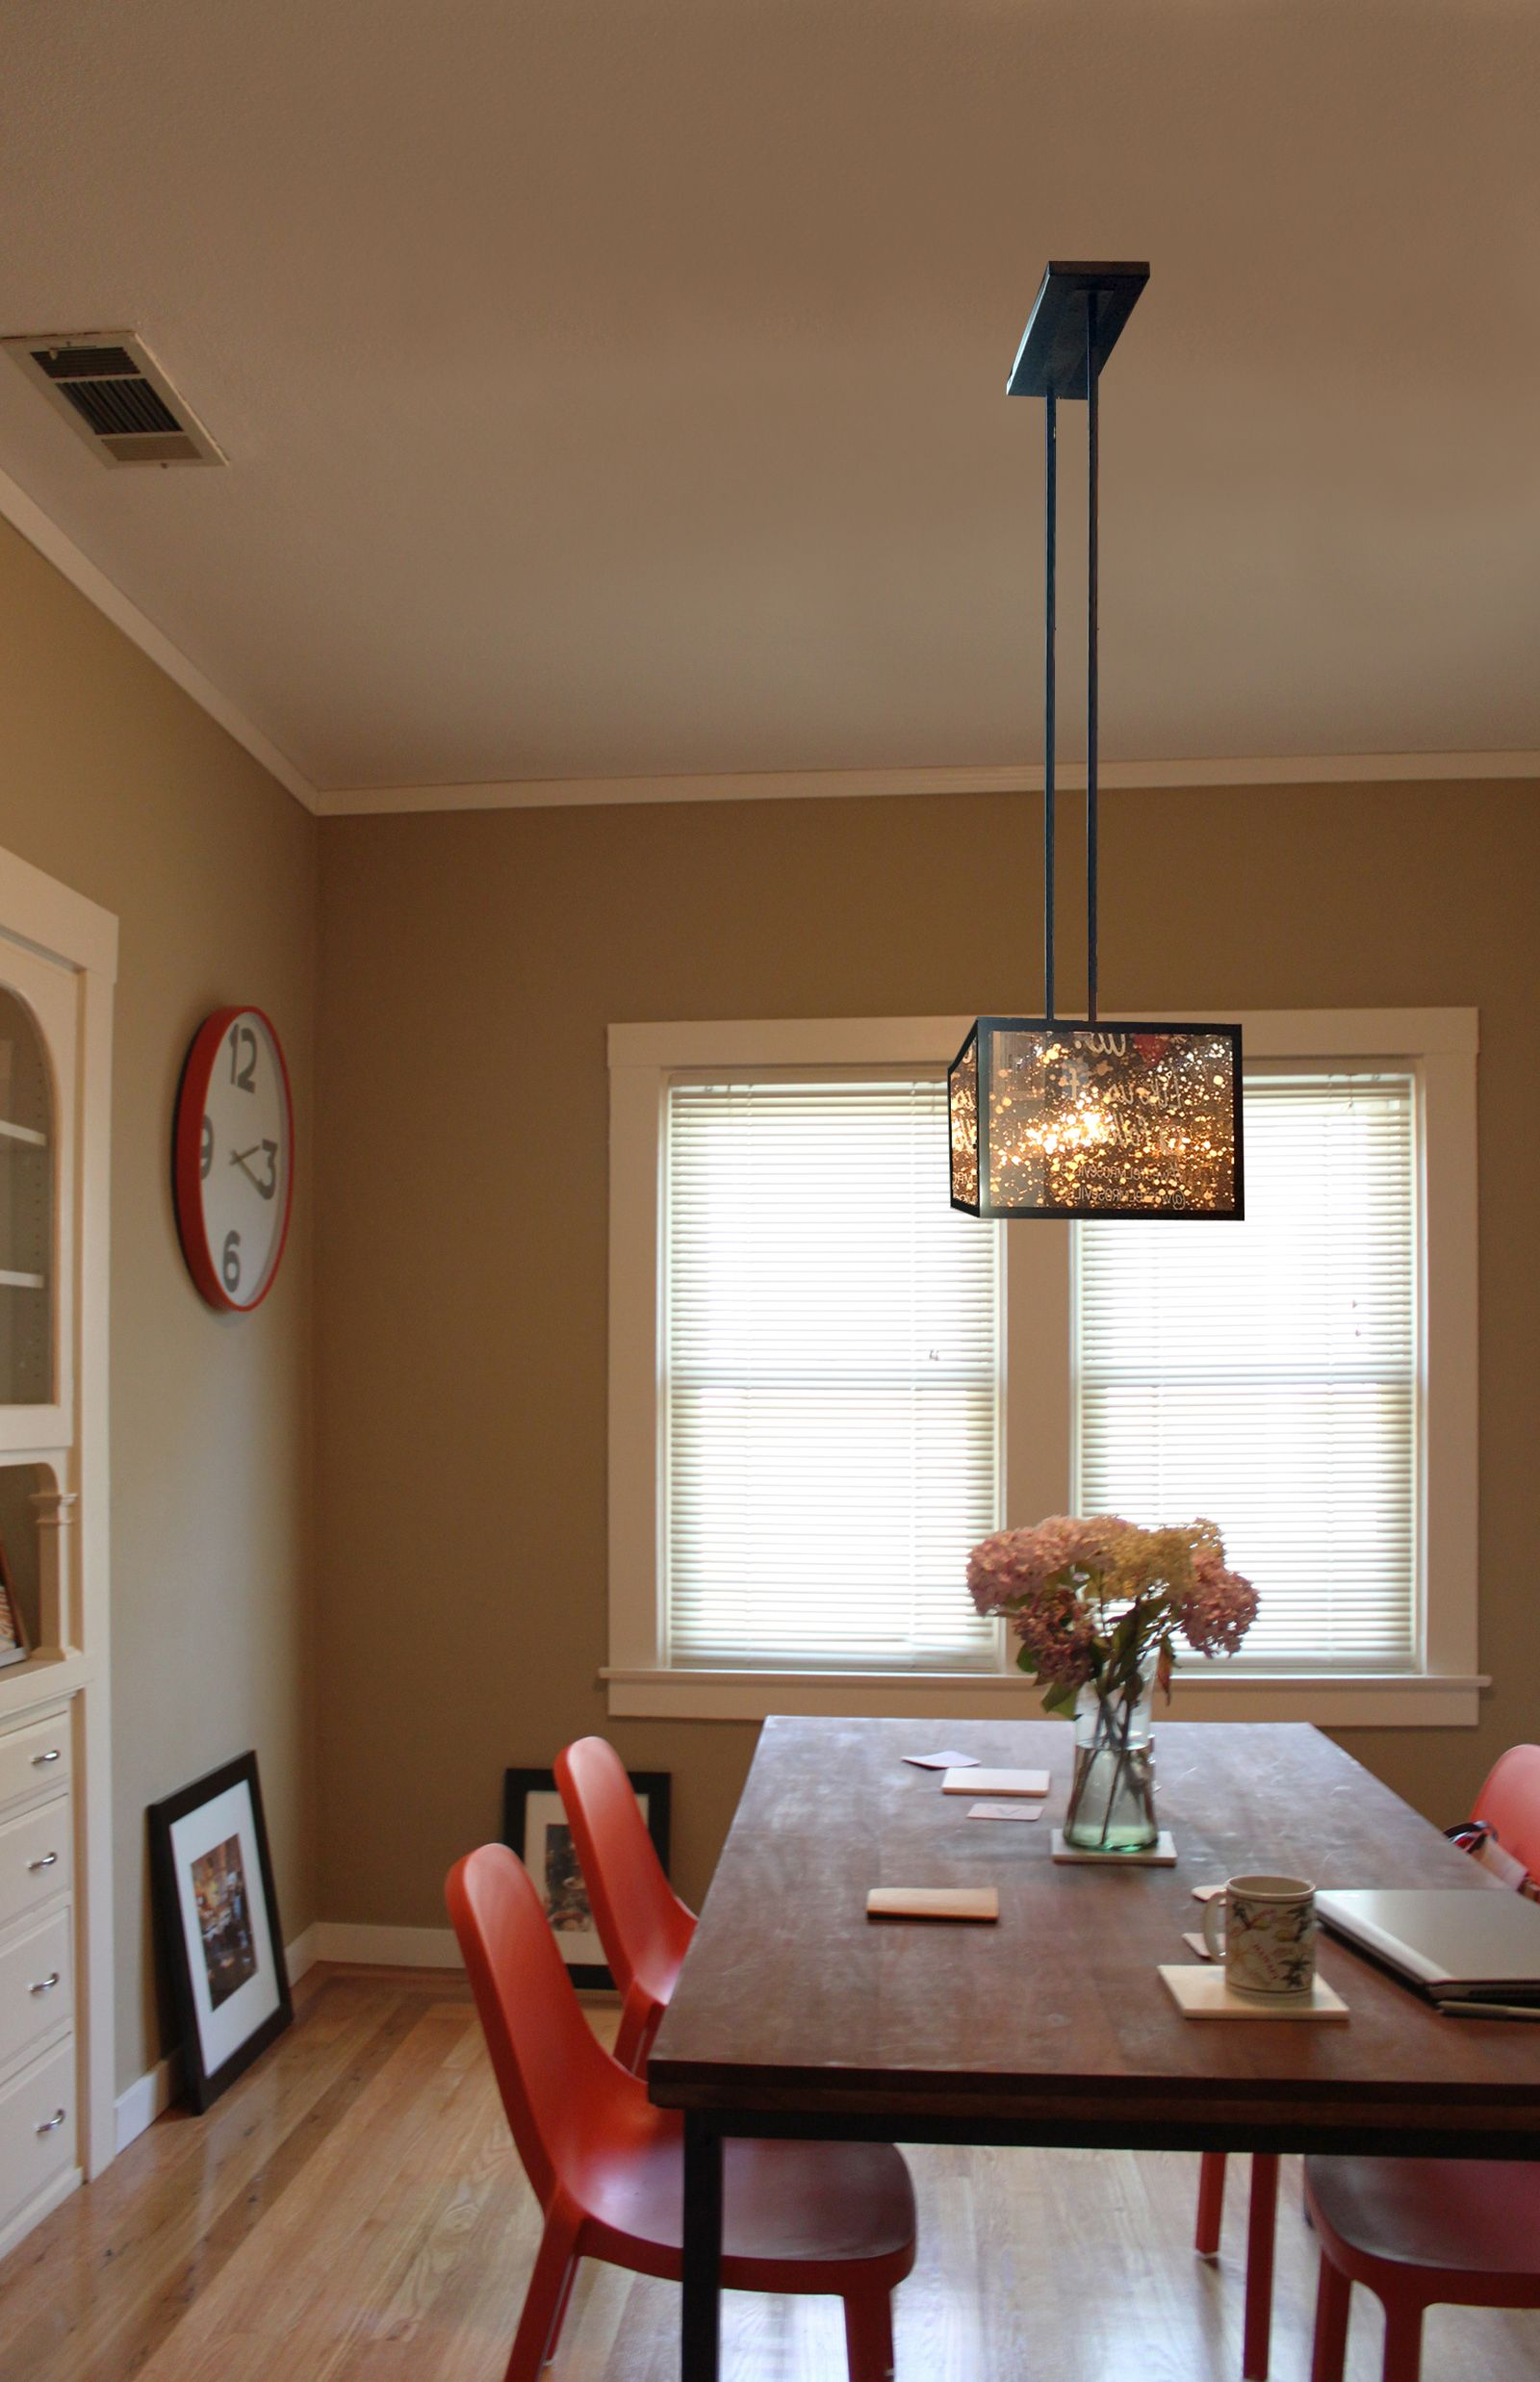 Dining Room Photoshopped With Panorama Chandelier West Elm